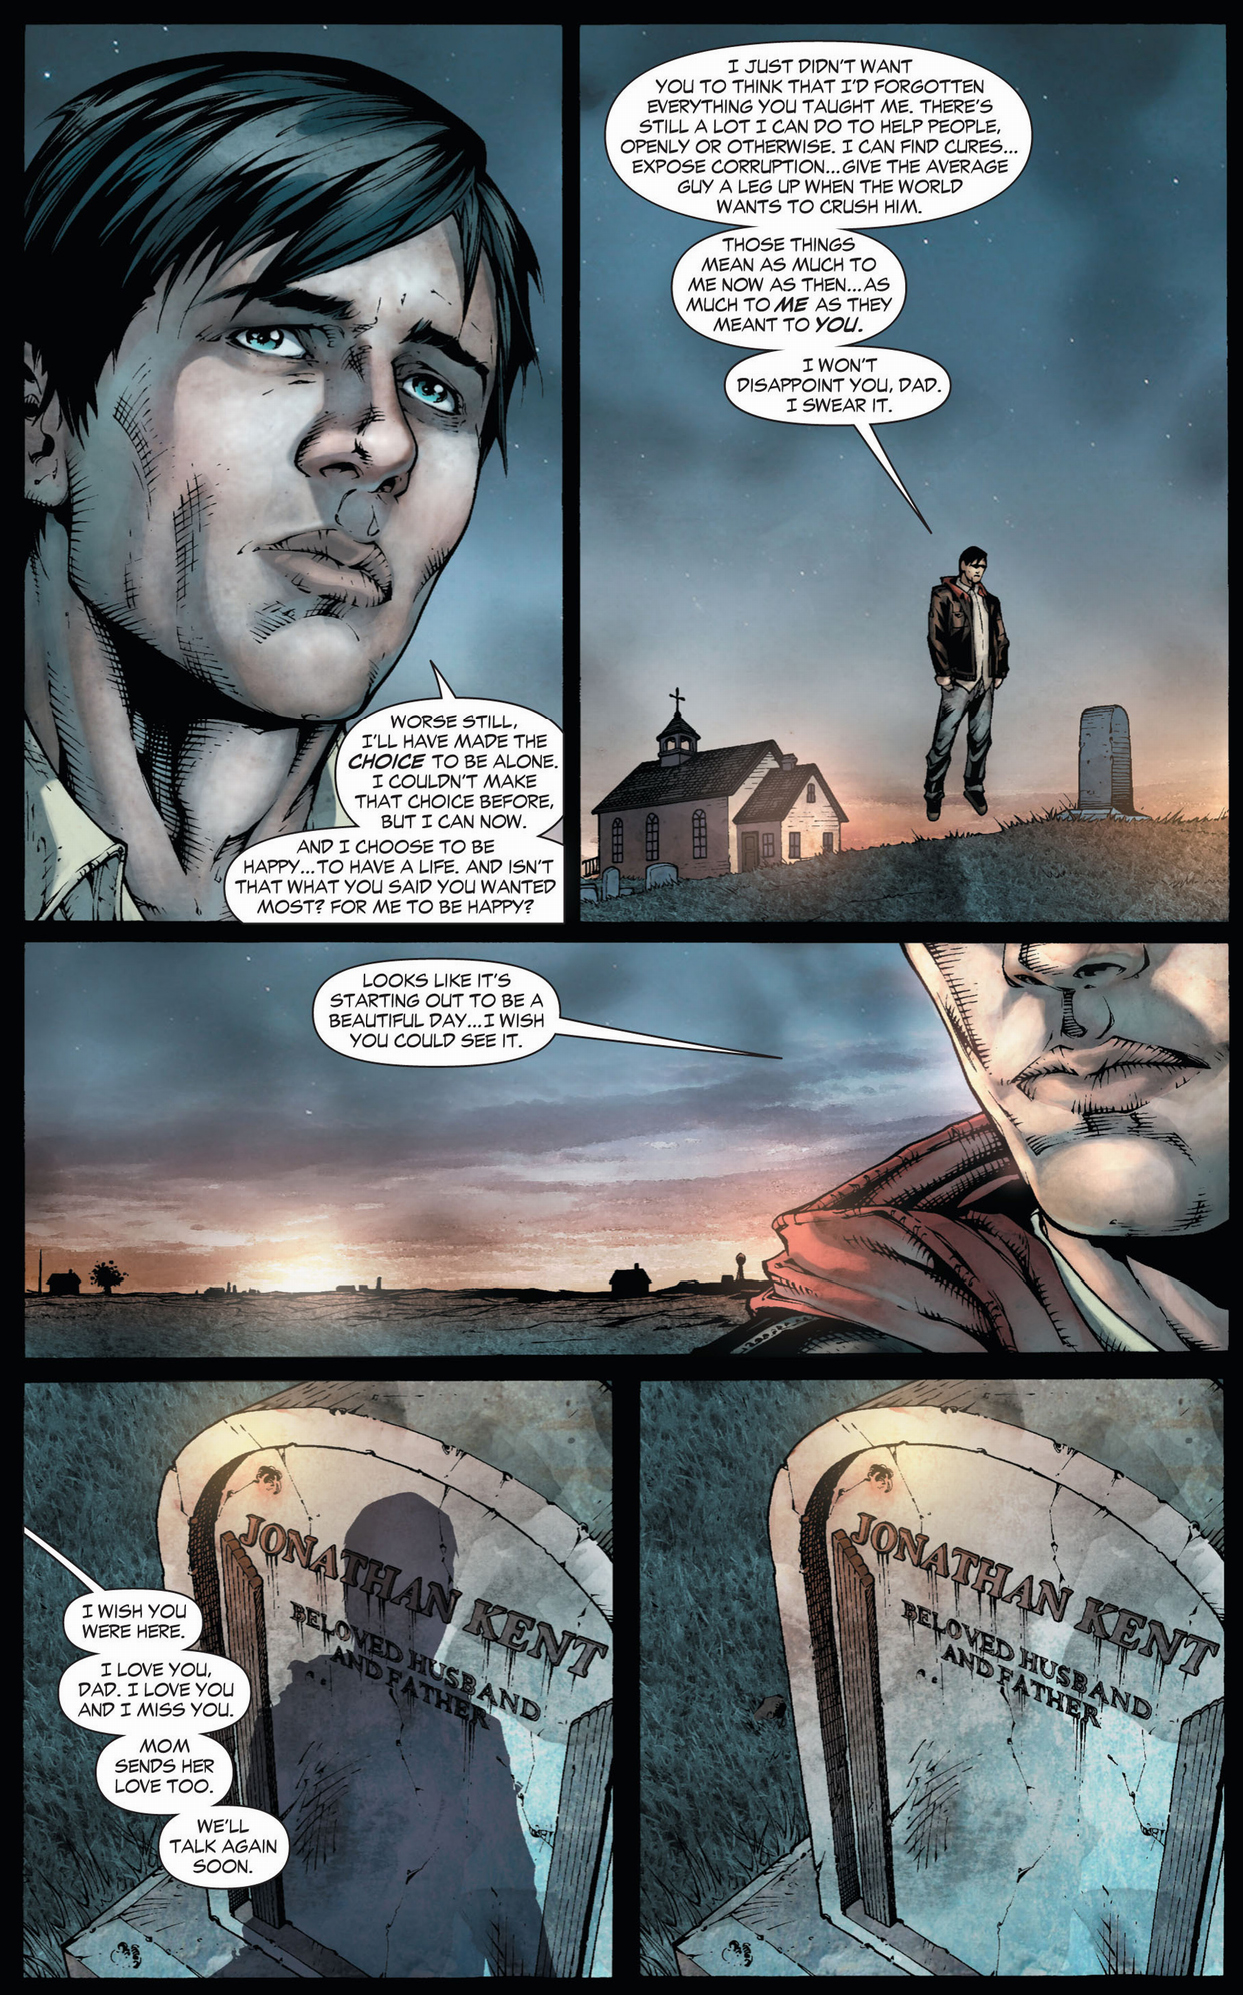 clark kent visits his father's grave (earth 1)